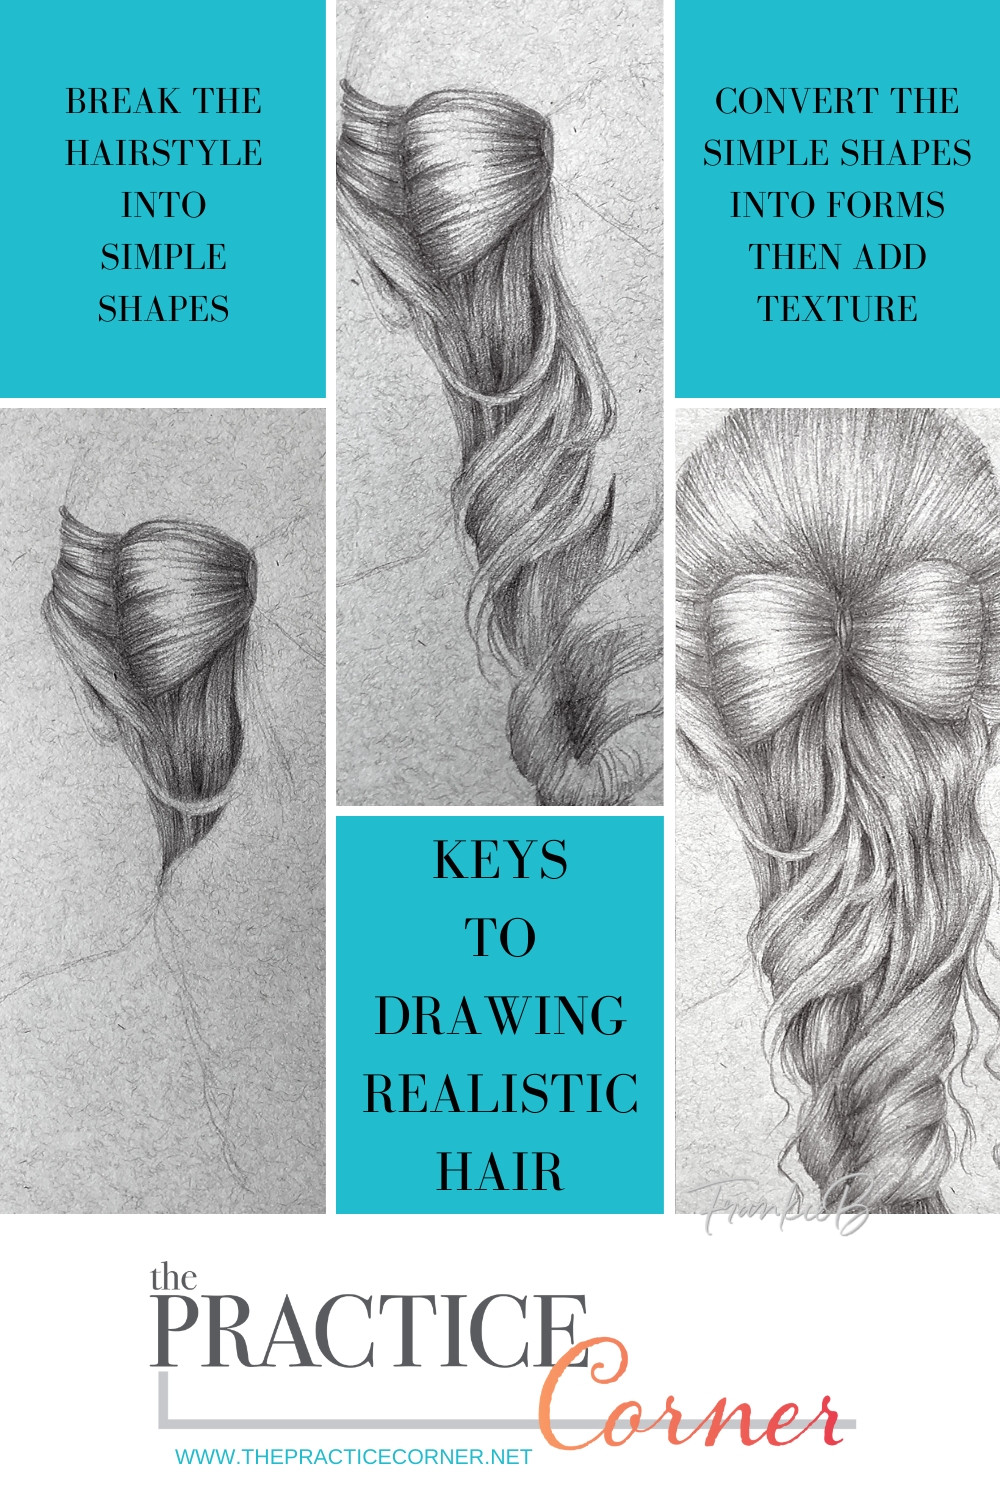 Keys to drawing or coloring hair with realism. | How to improve your coloring | How to draw realistic hair | How to color realistic hair | #coloredpencilpractice  #thepracticecorner #realisticcoloring #coloringtechniques